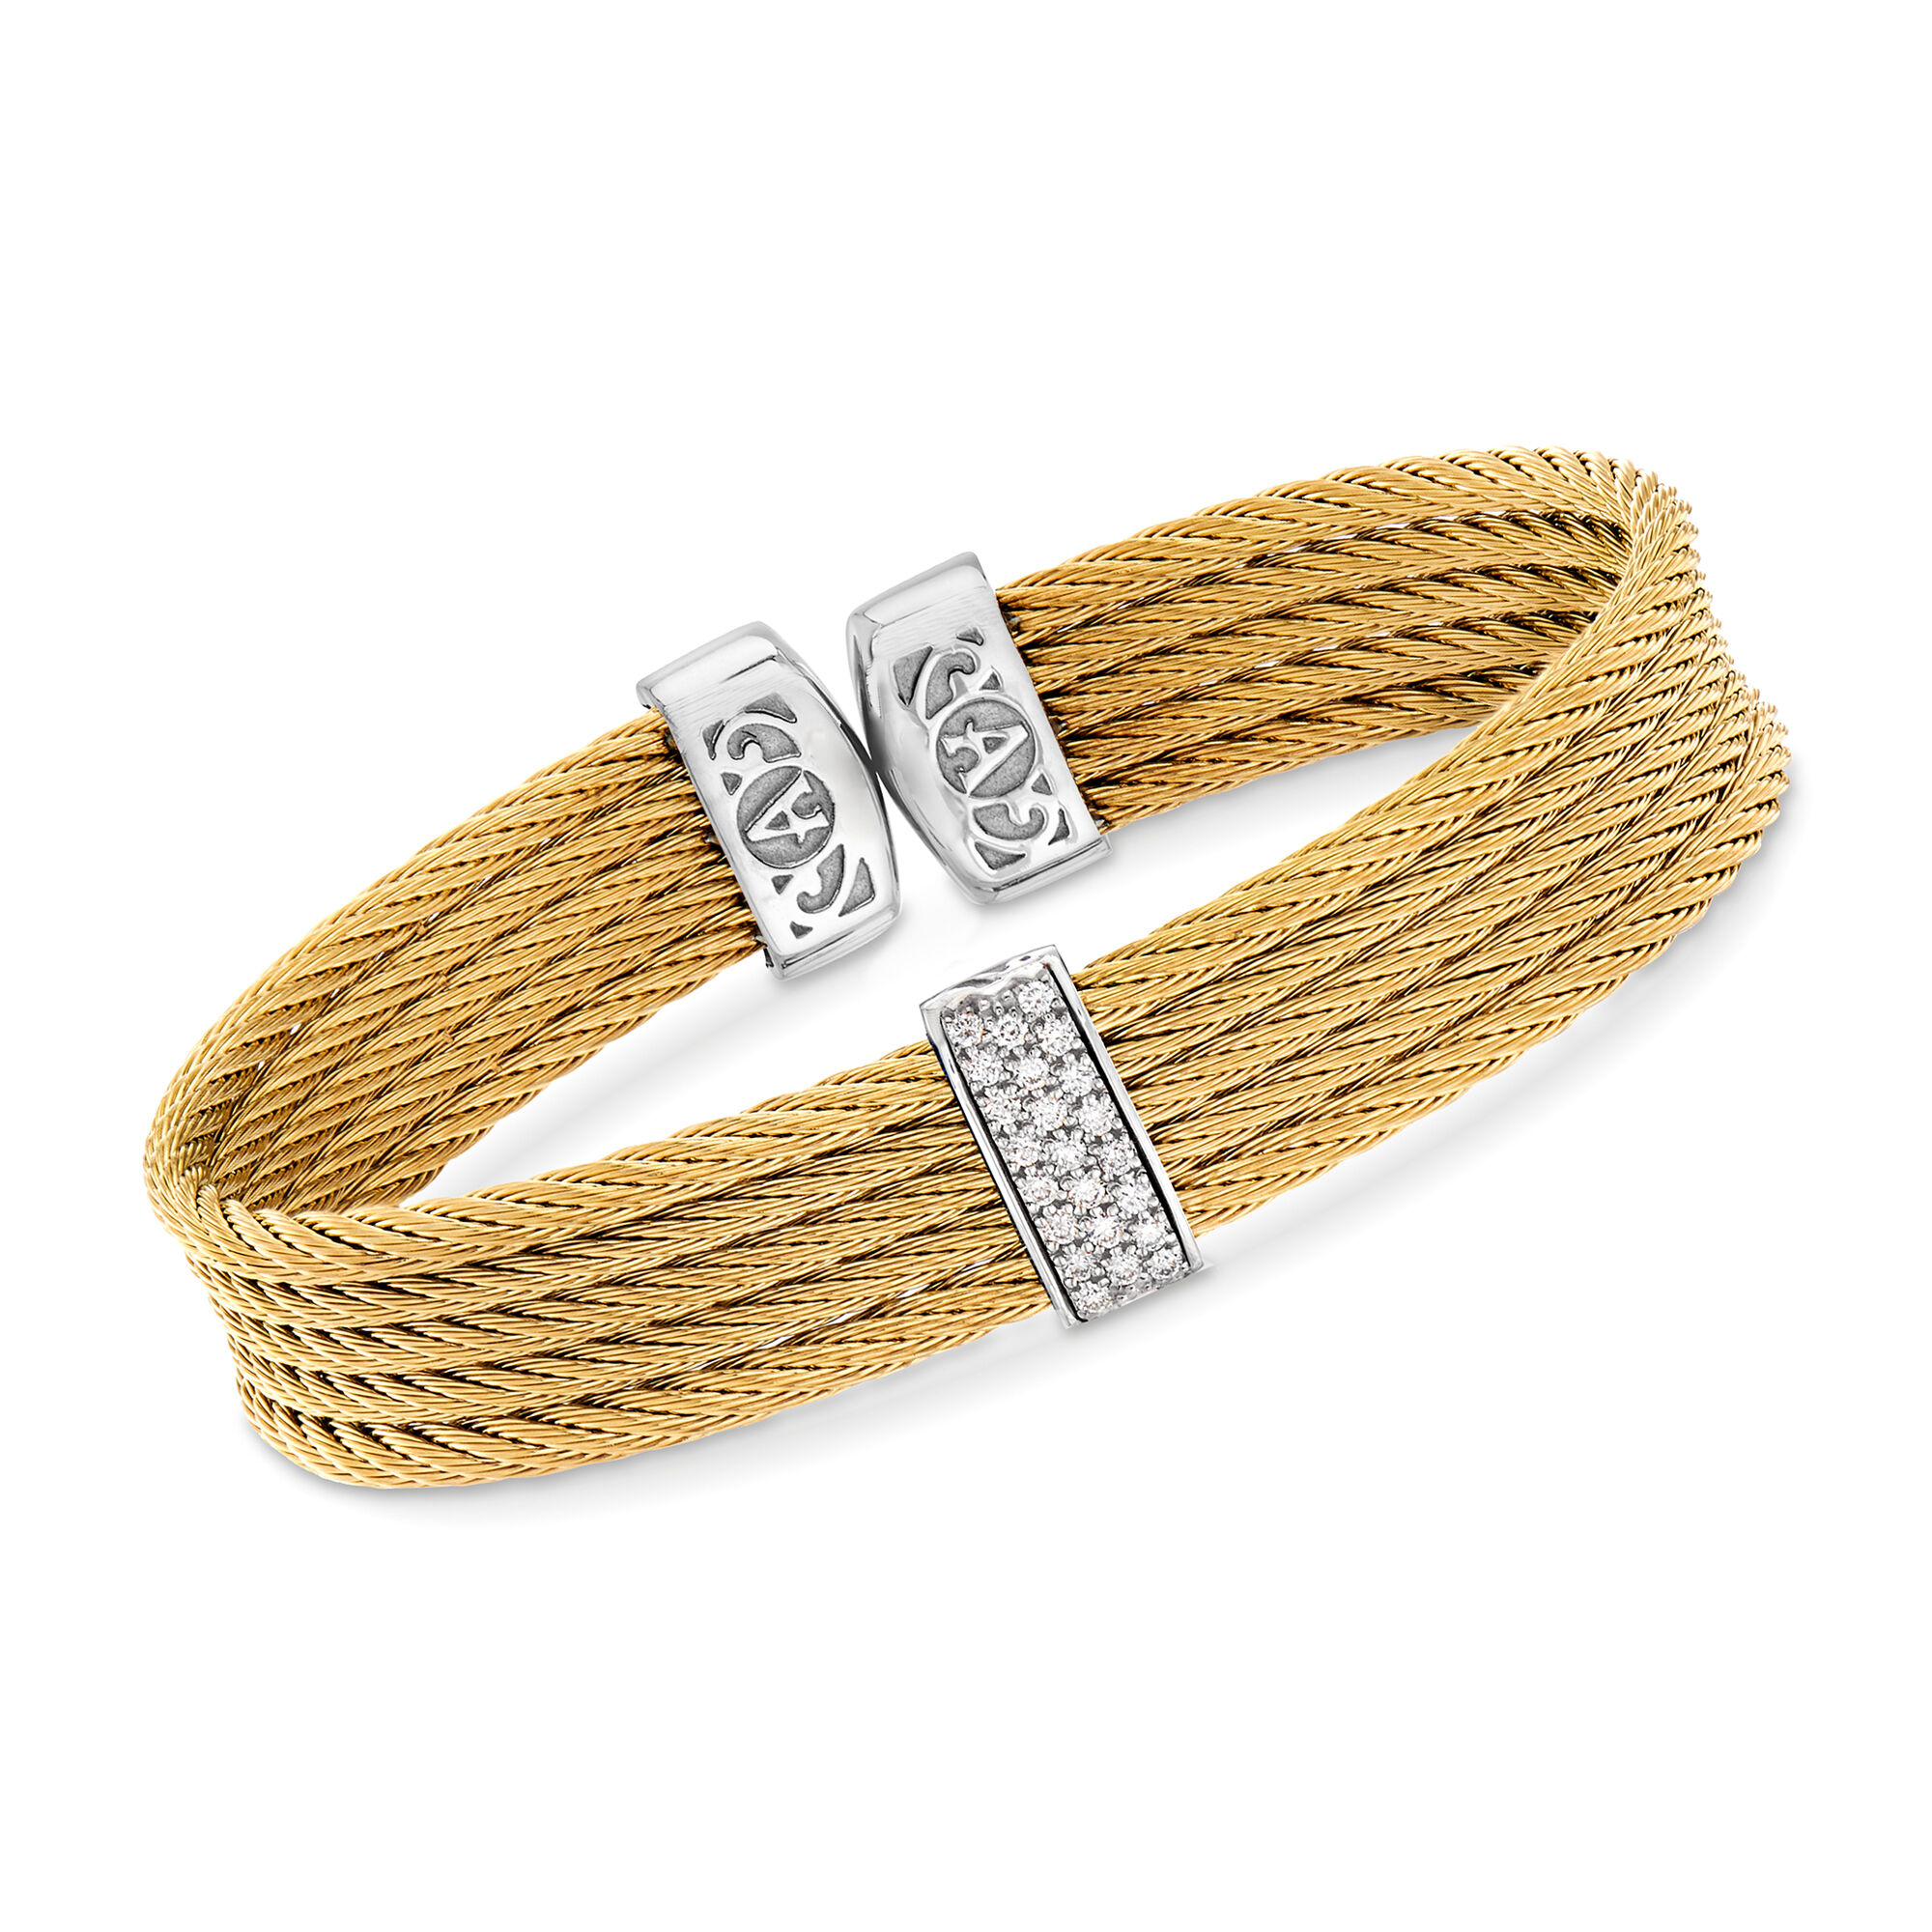 Cable Bangle Bracelet Yellow and Silver 7 in Stainless Steel 2-Tone